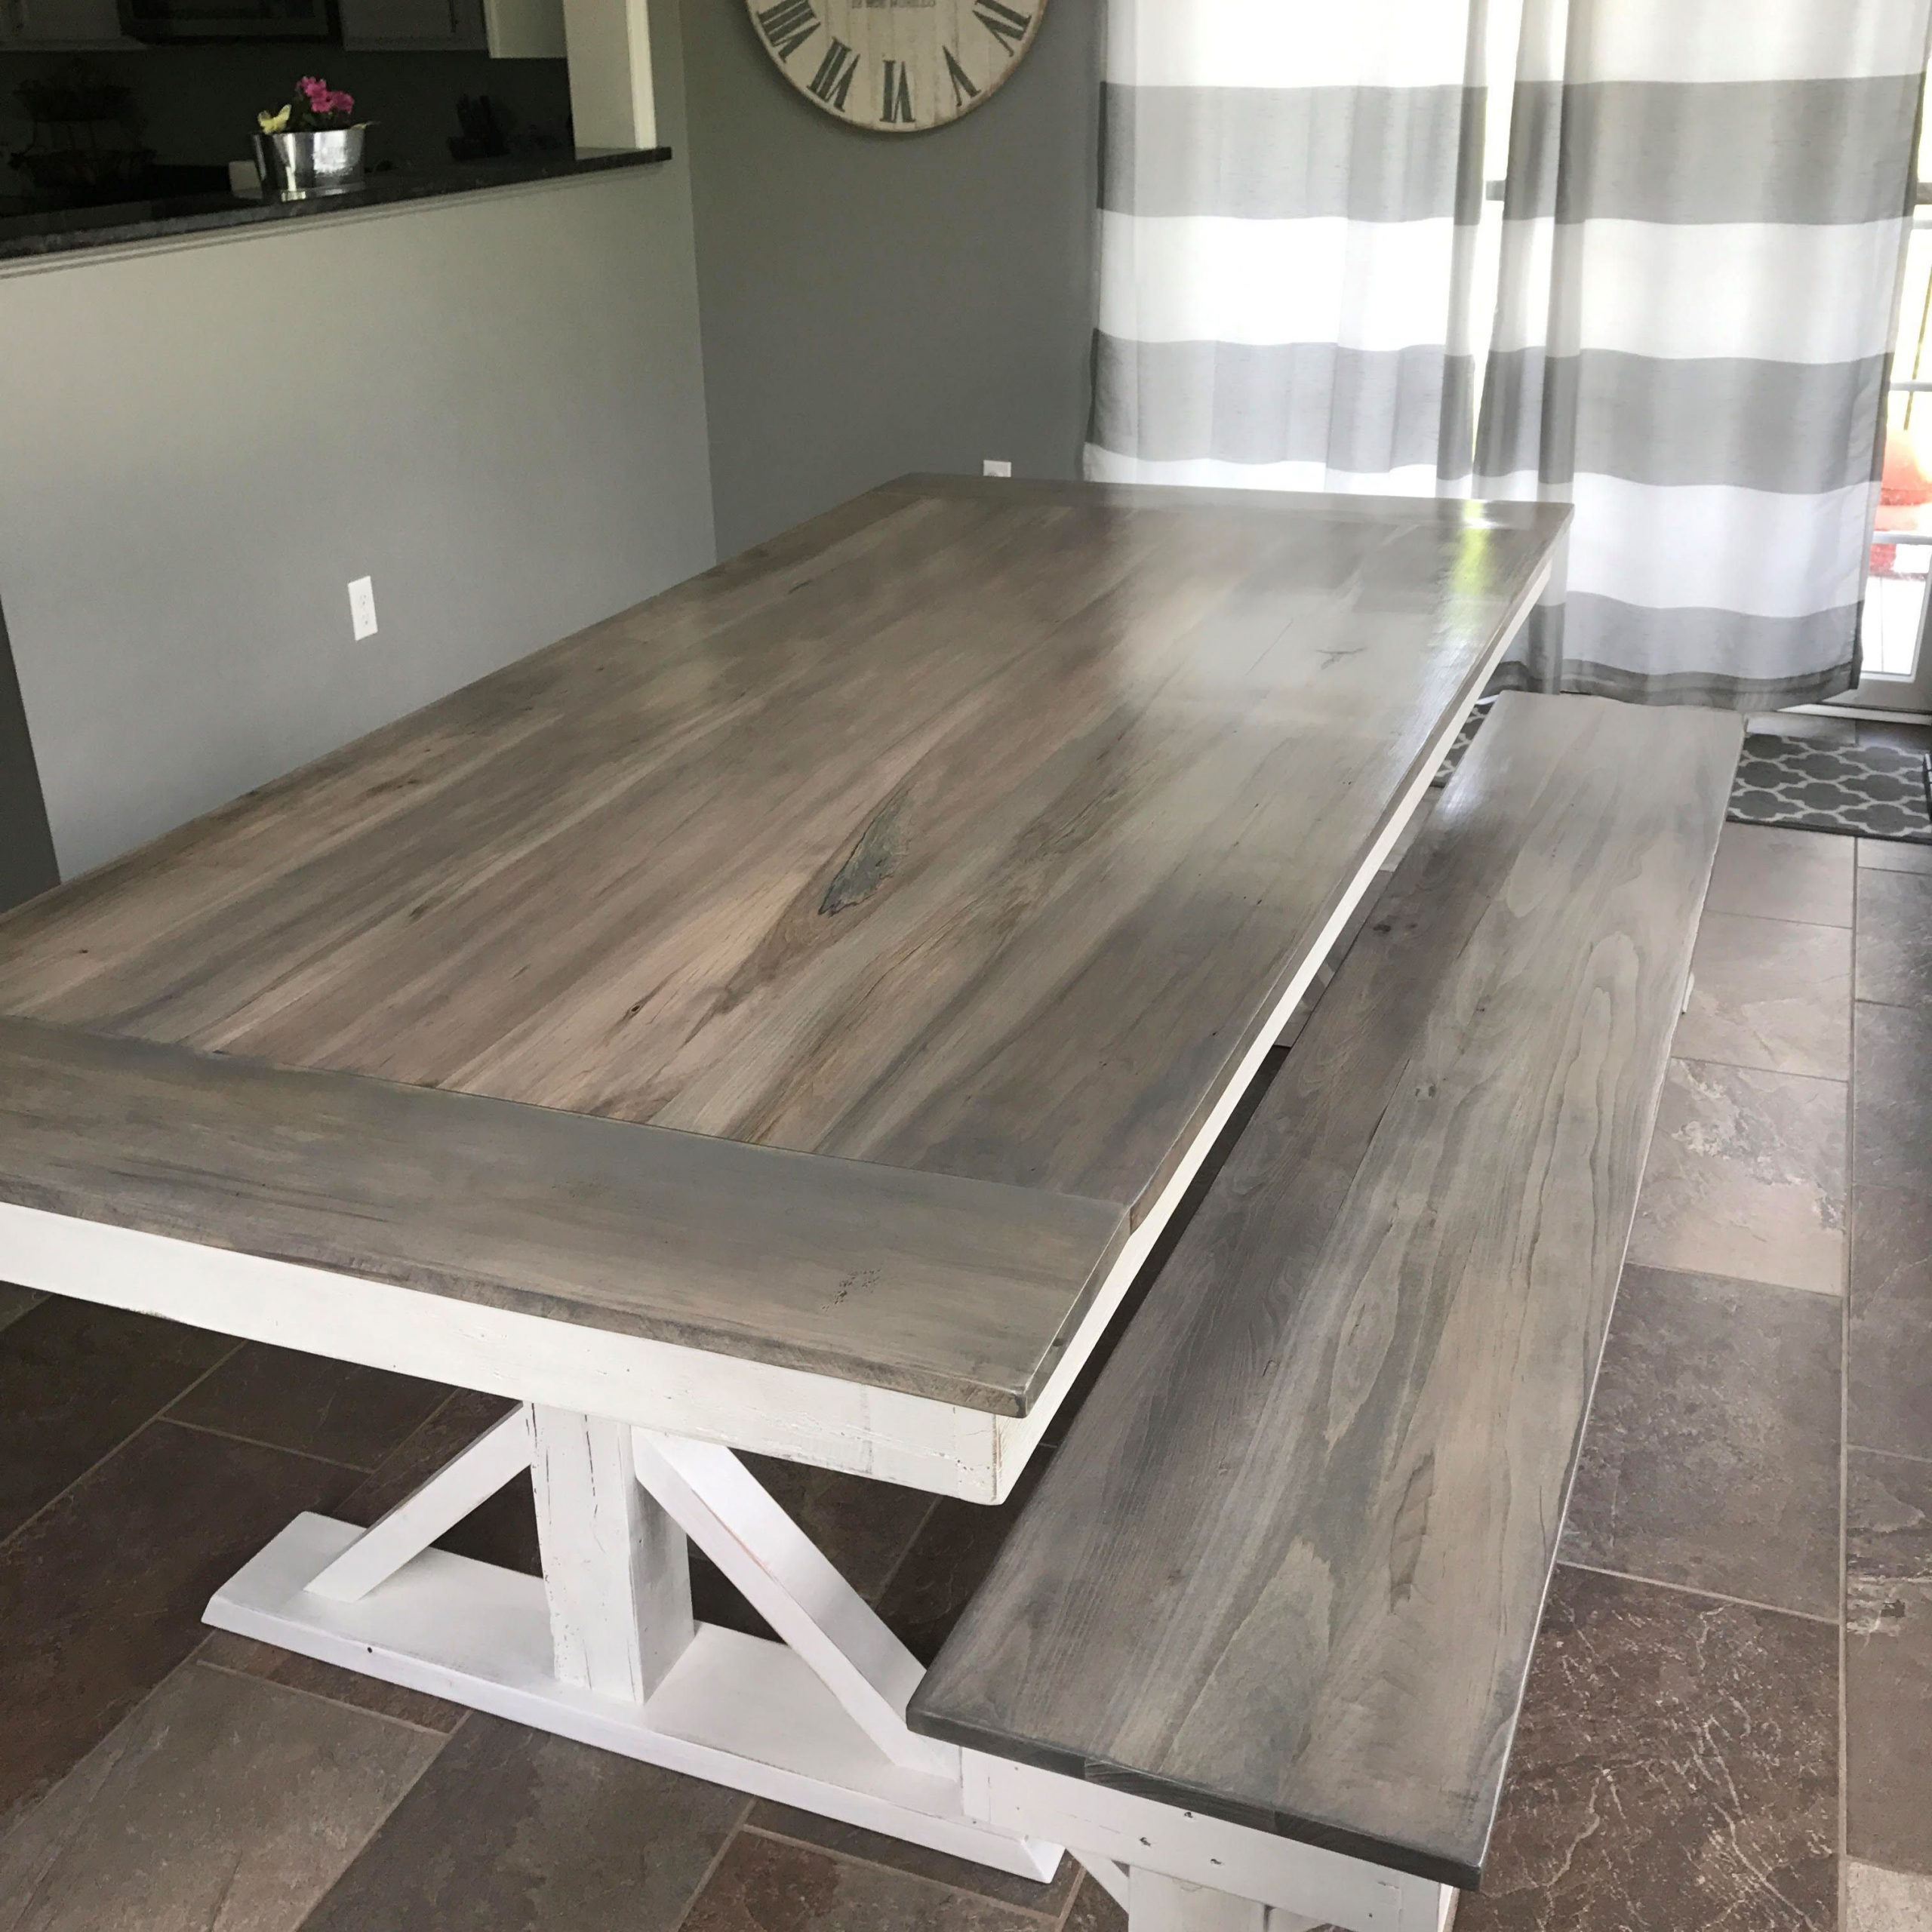 Trestle X Farmhouse Dining Table | Farmhouse Dining Room Intended For Most Recently Released Alexxes 38'' Trestle Dining Tables (View 8 of 15)